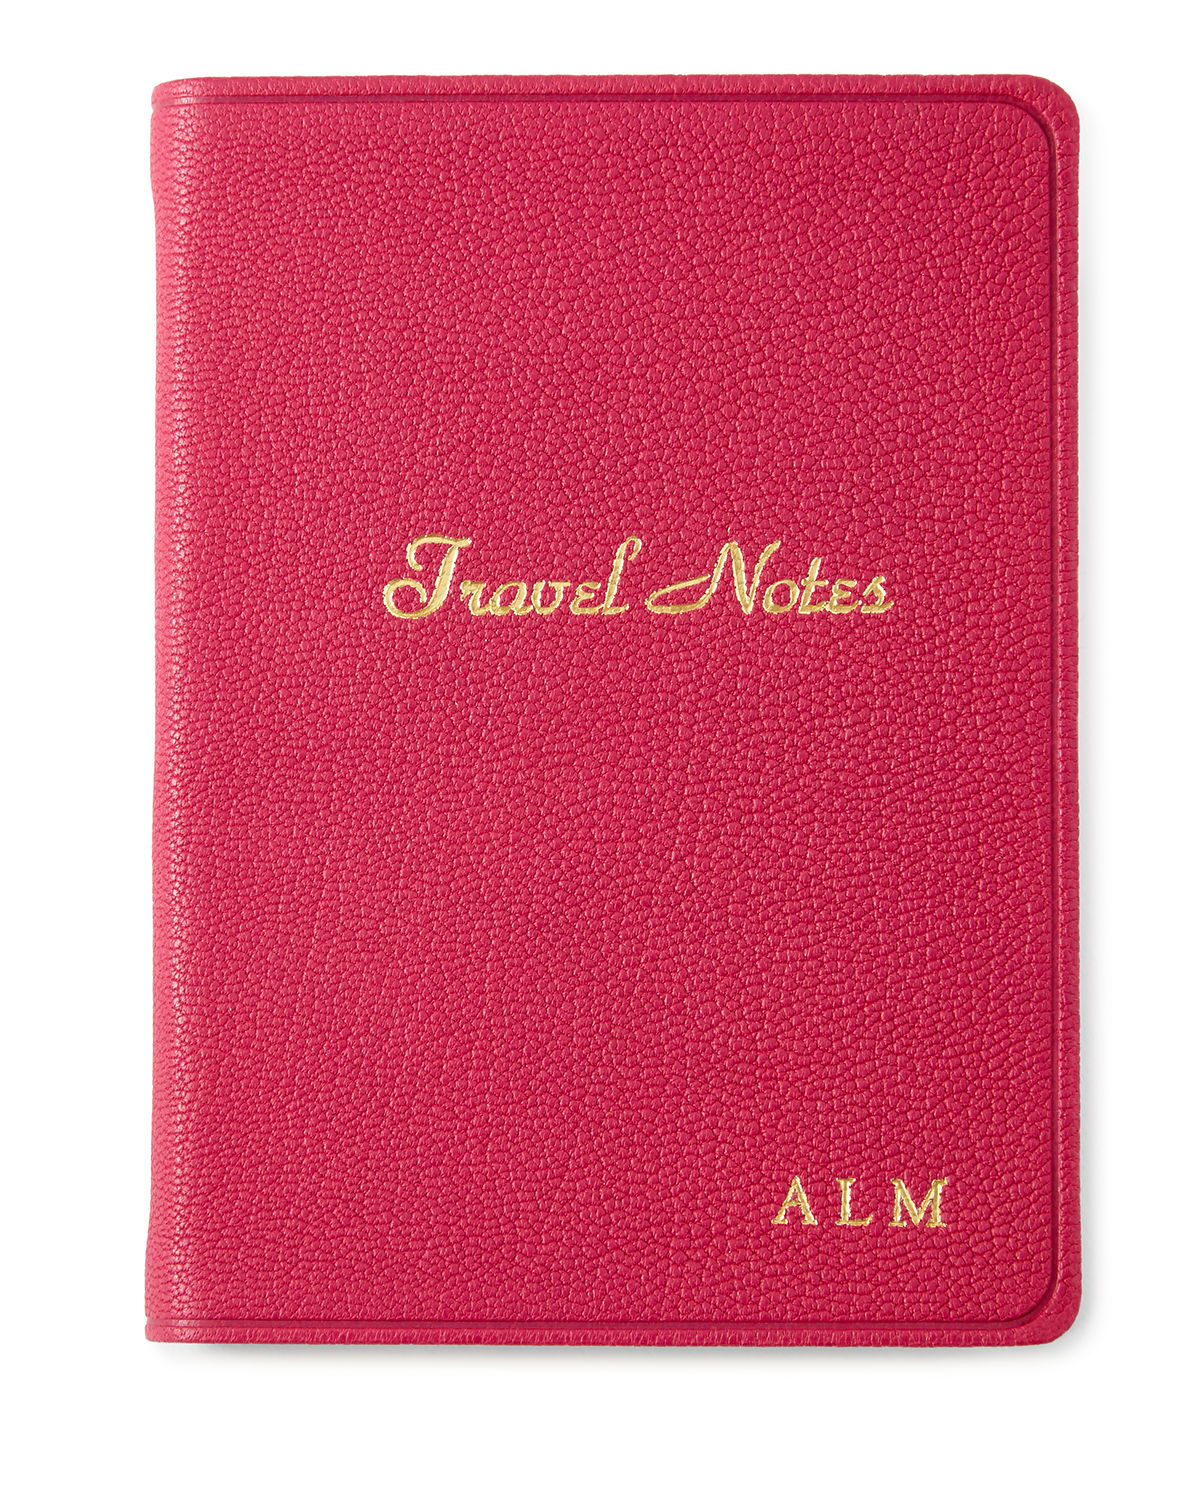 Handcrafted travel notebook. Leather cover. Summary pages for detailing your adventures; full-color maps. Editorial information includes toll-free numbers, world weather, distances, and international dialing codes. Cream-white, acid-free paper with gilt edges; double-faced cream satin ribbon marker. Personalization is one to three initials in style and color shown. 4.375\